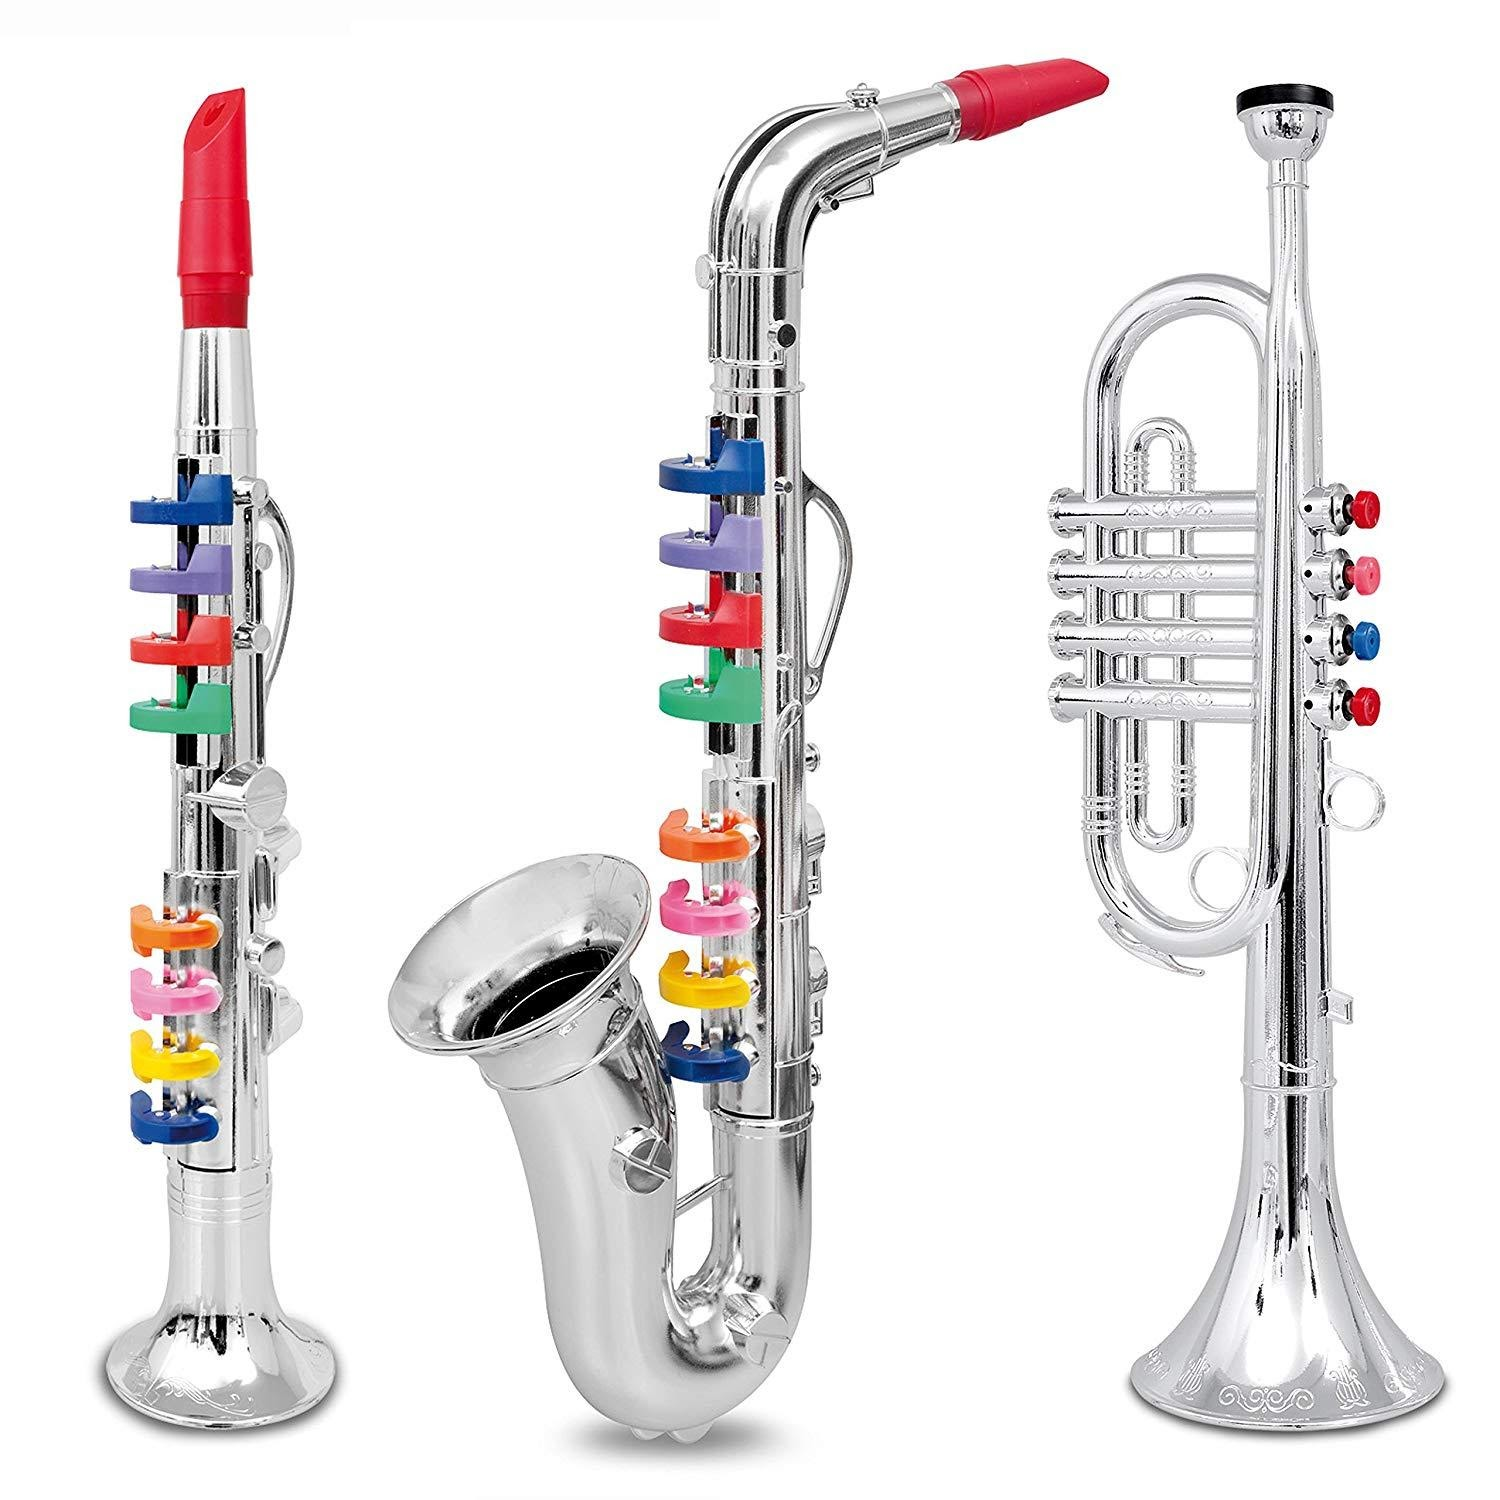 Pack of 3 Brass Instrument Toys on white background